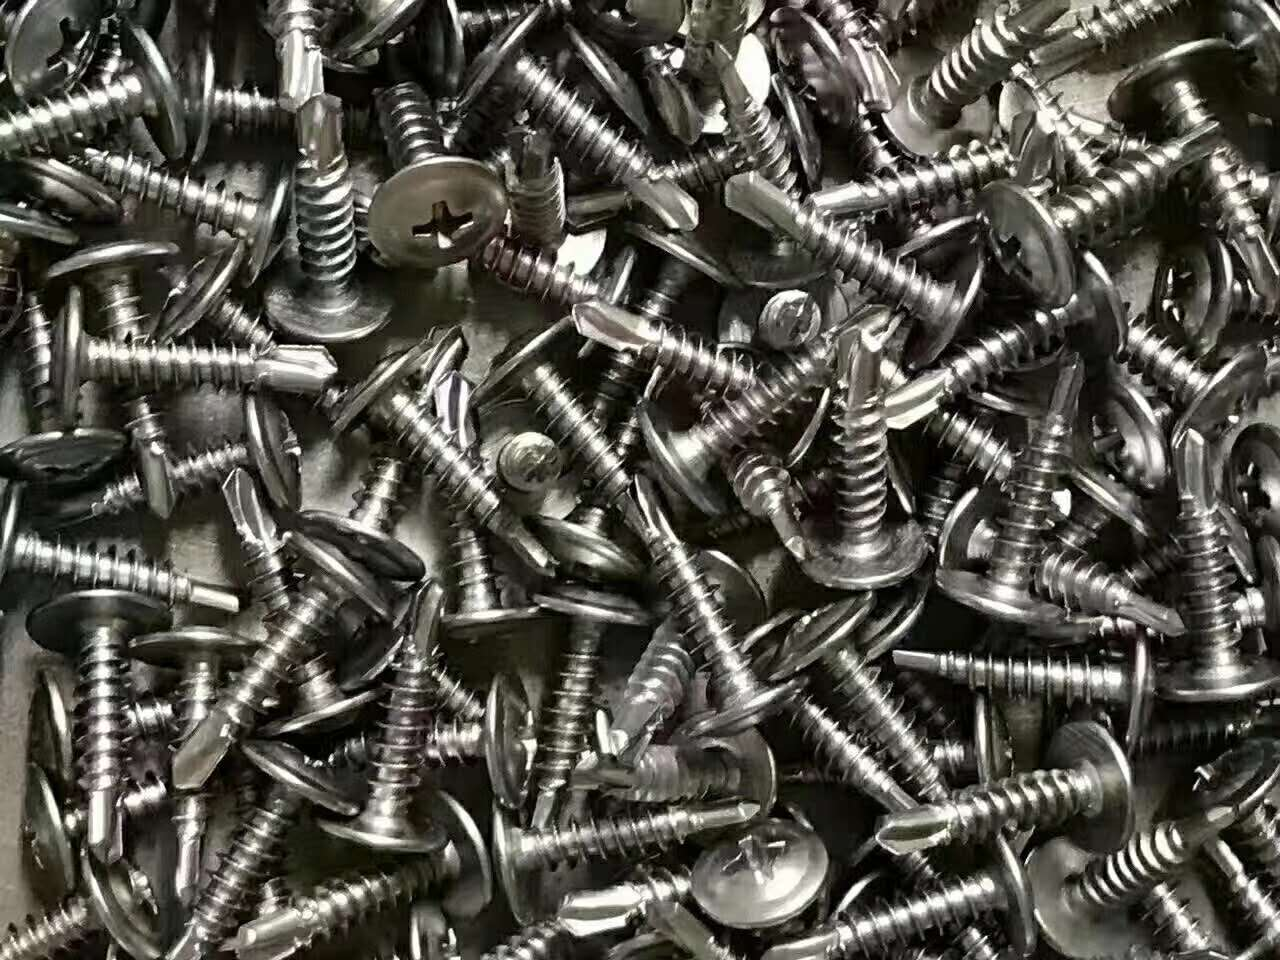 Wafer Head Stainless Steel Self Drilling Screws